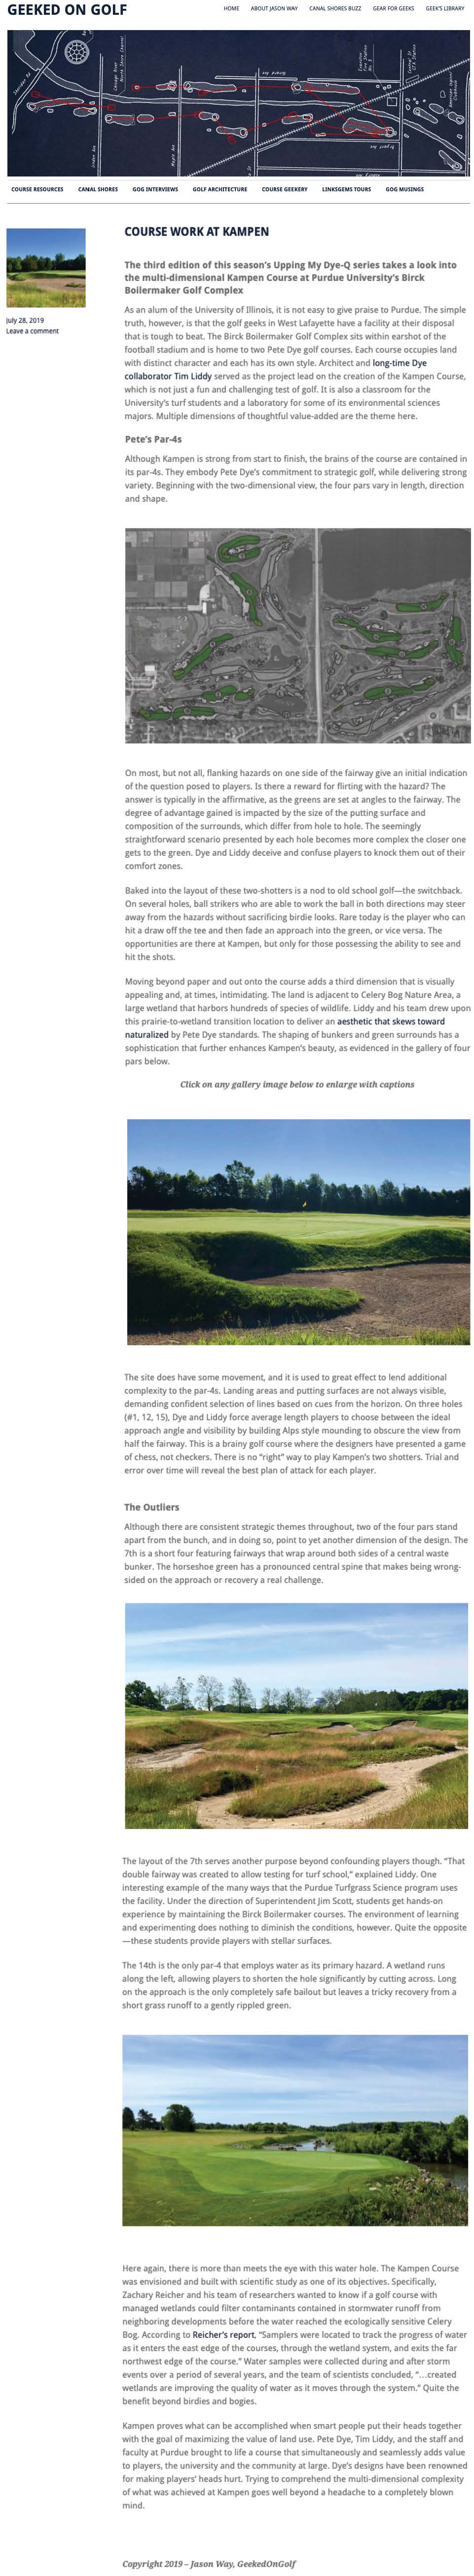 Journal — Member, American Society of Golf Course Architects